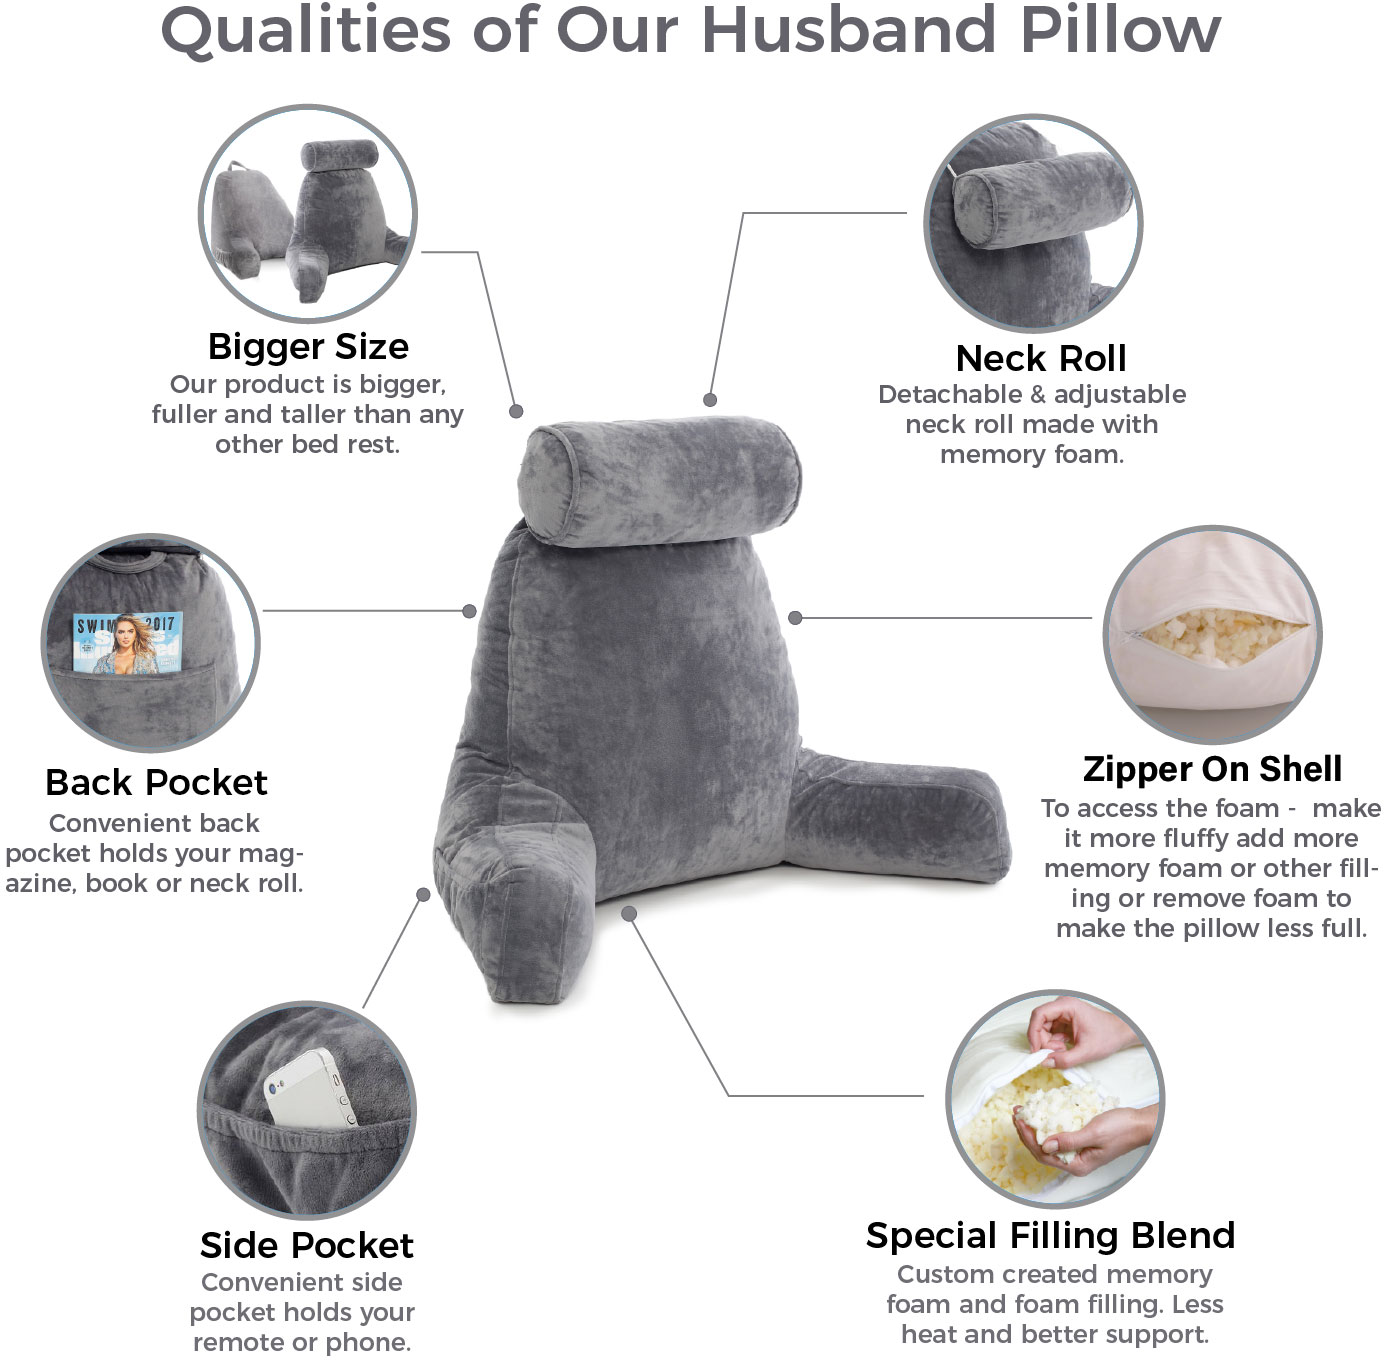 husband pillow dark grey big reading bed rest pillow with arms sit up tall with premium shredded memory foam detachable neck roll removable